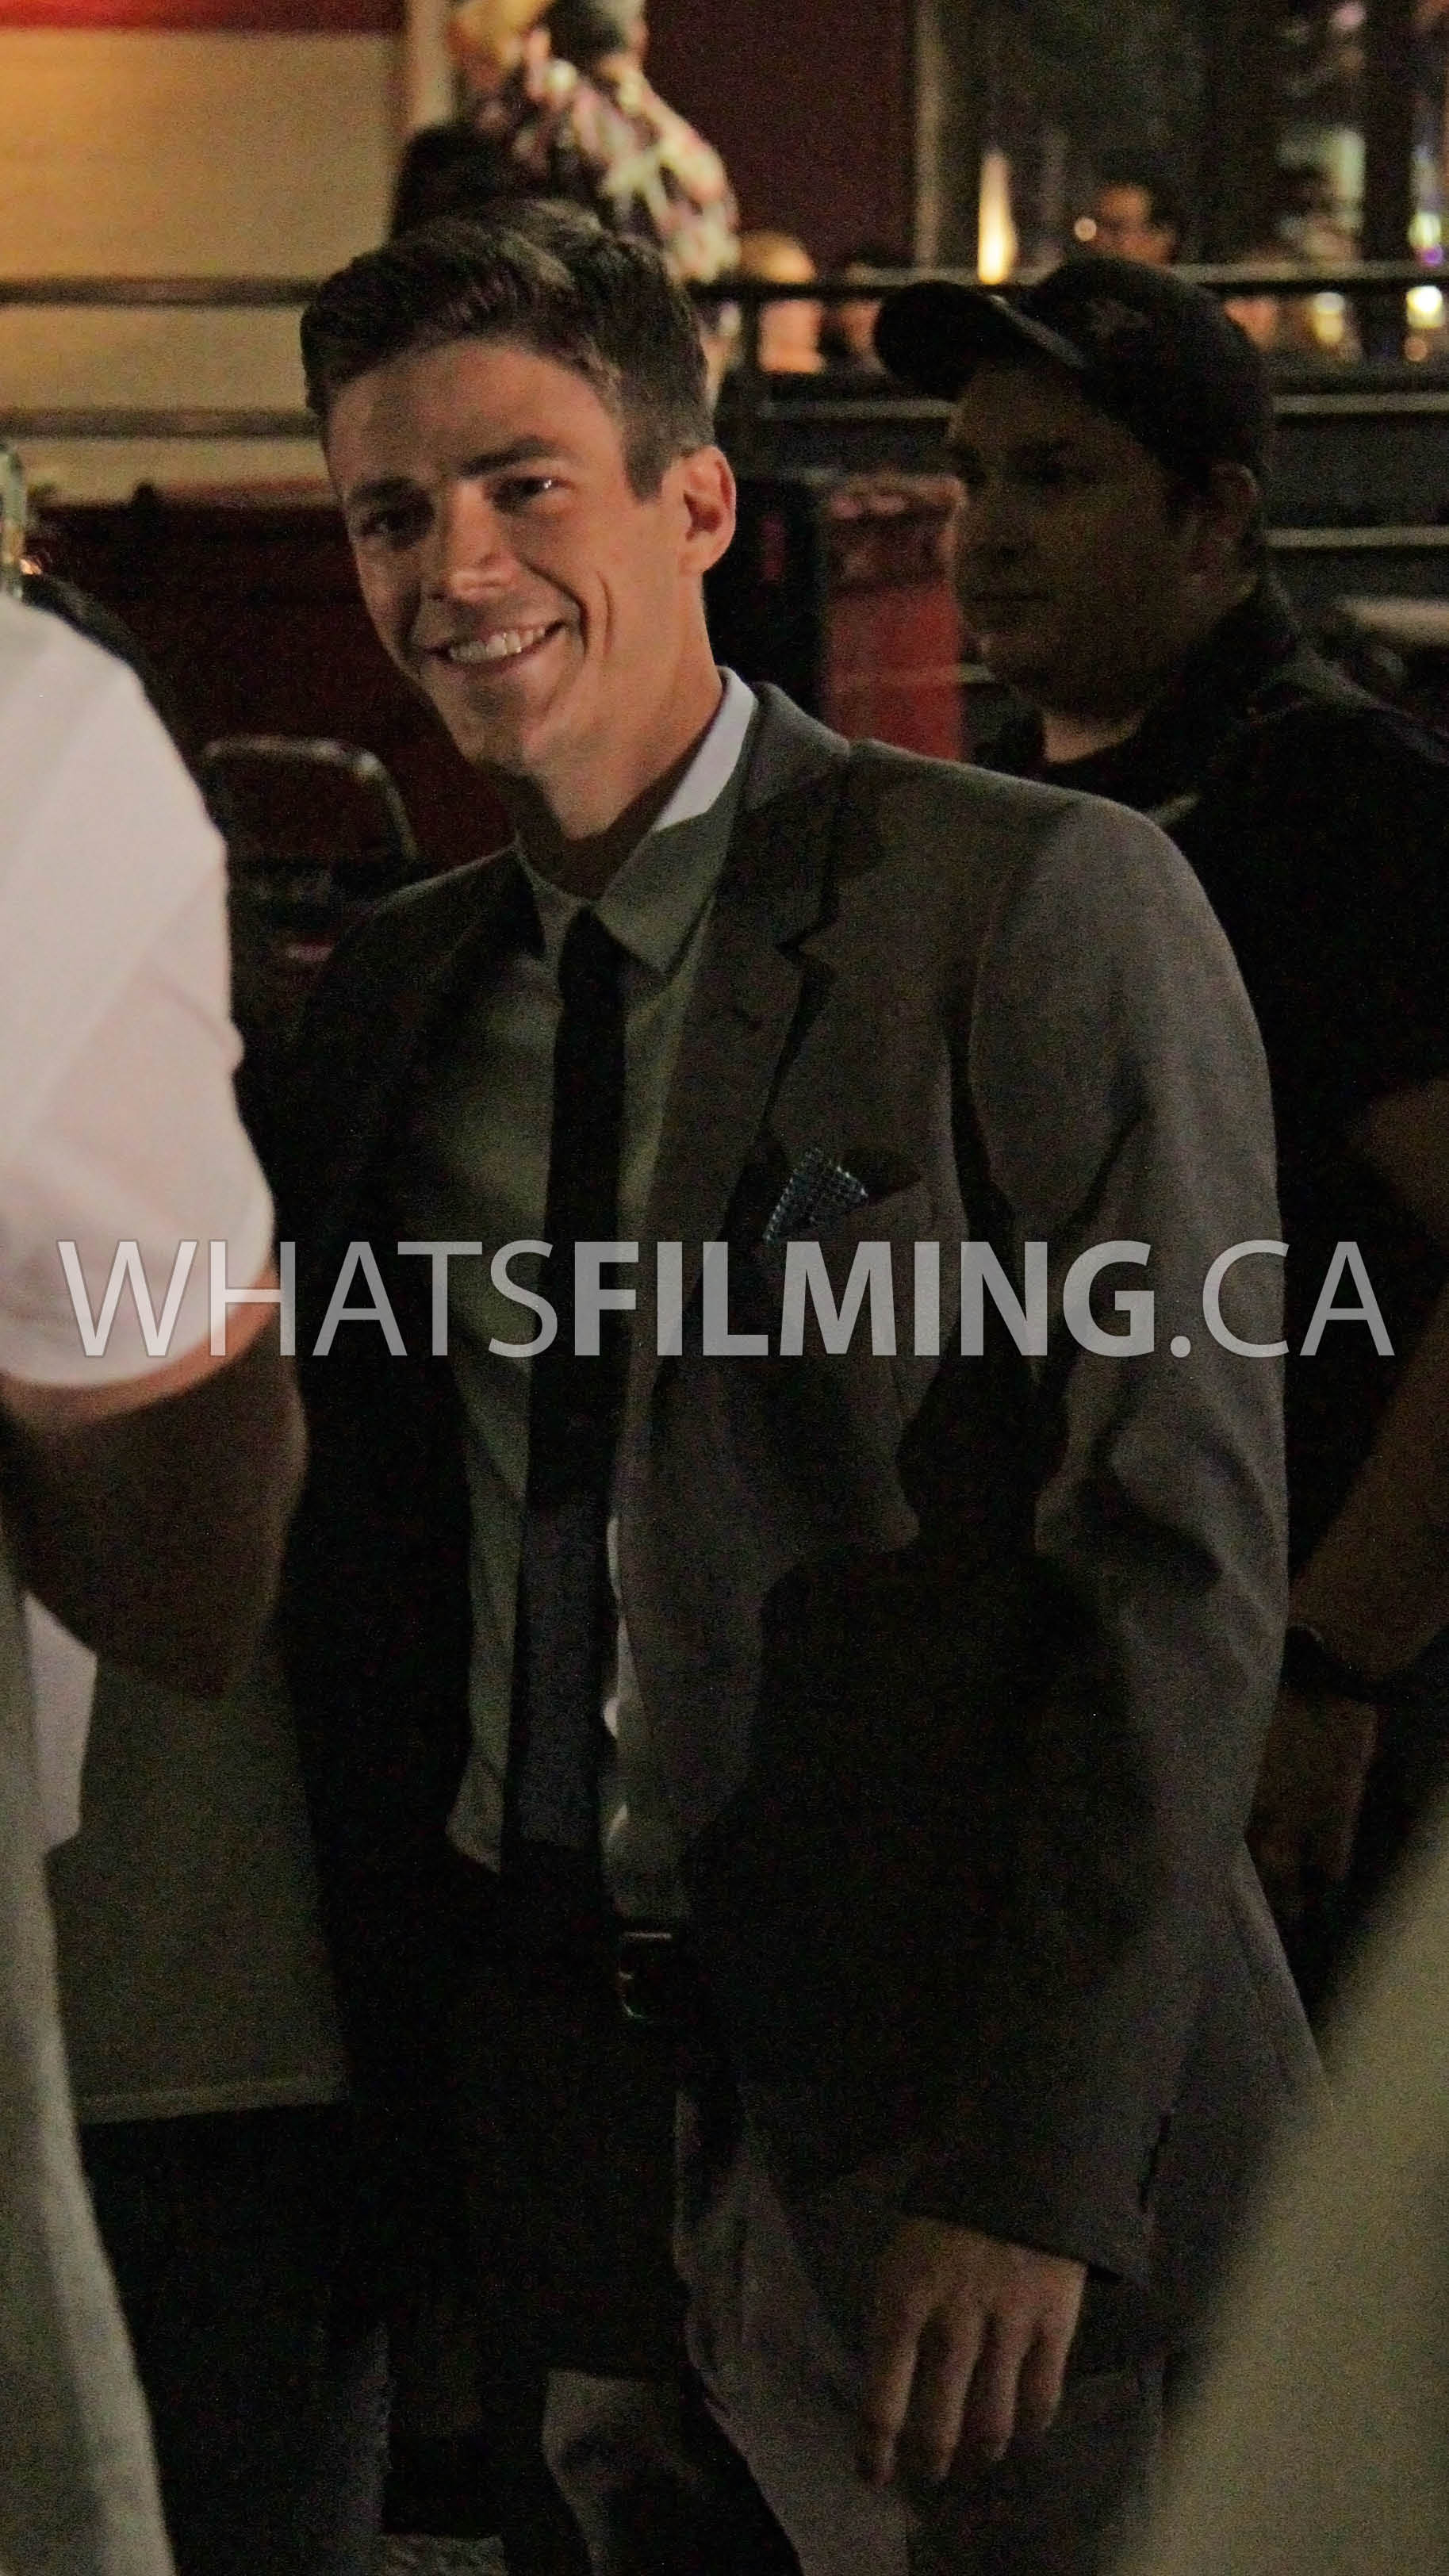 Grant gustin taking time to meet fans in between takes whats filming grant gustin taking time to meet fans in between takes m4hsunfo Image collections